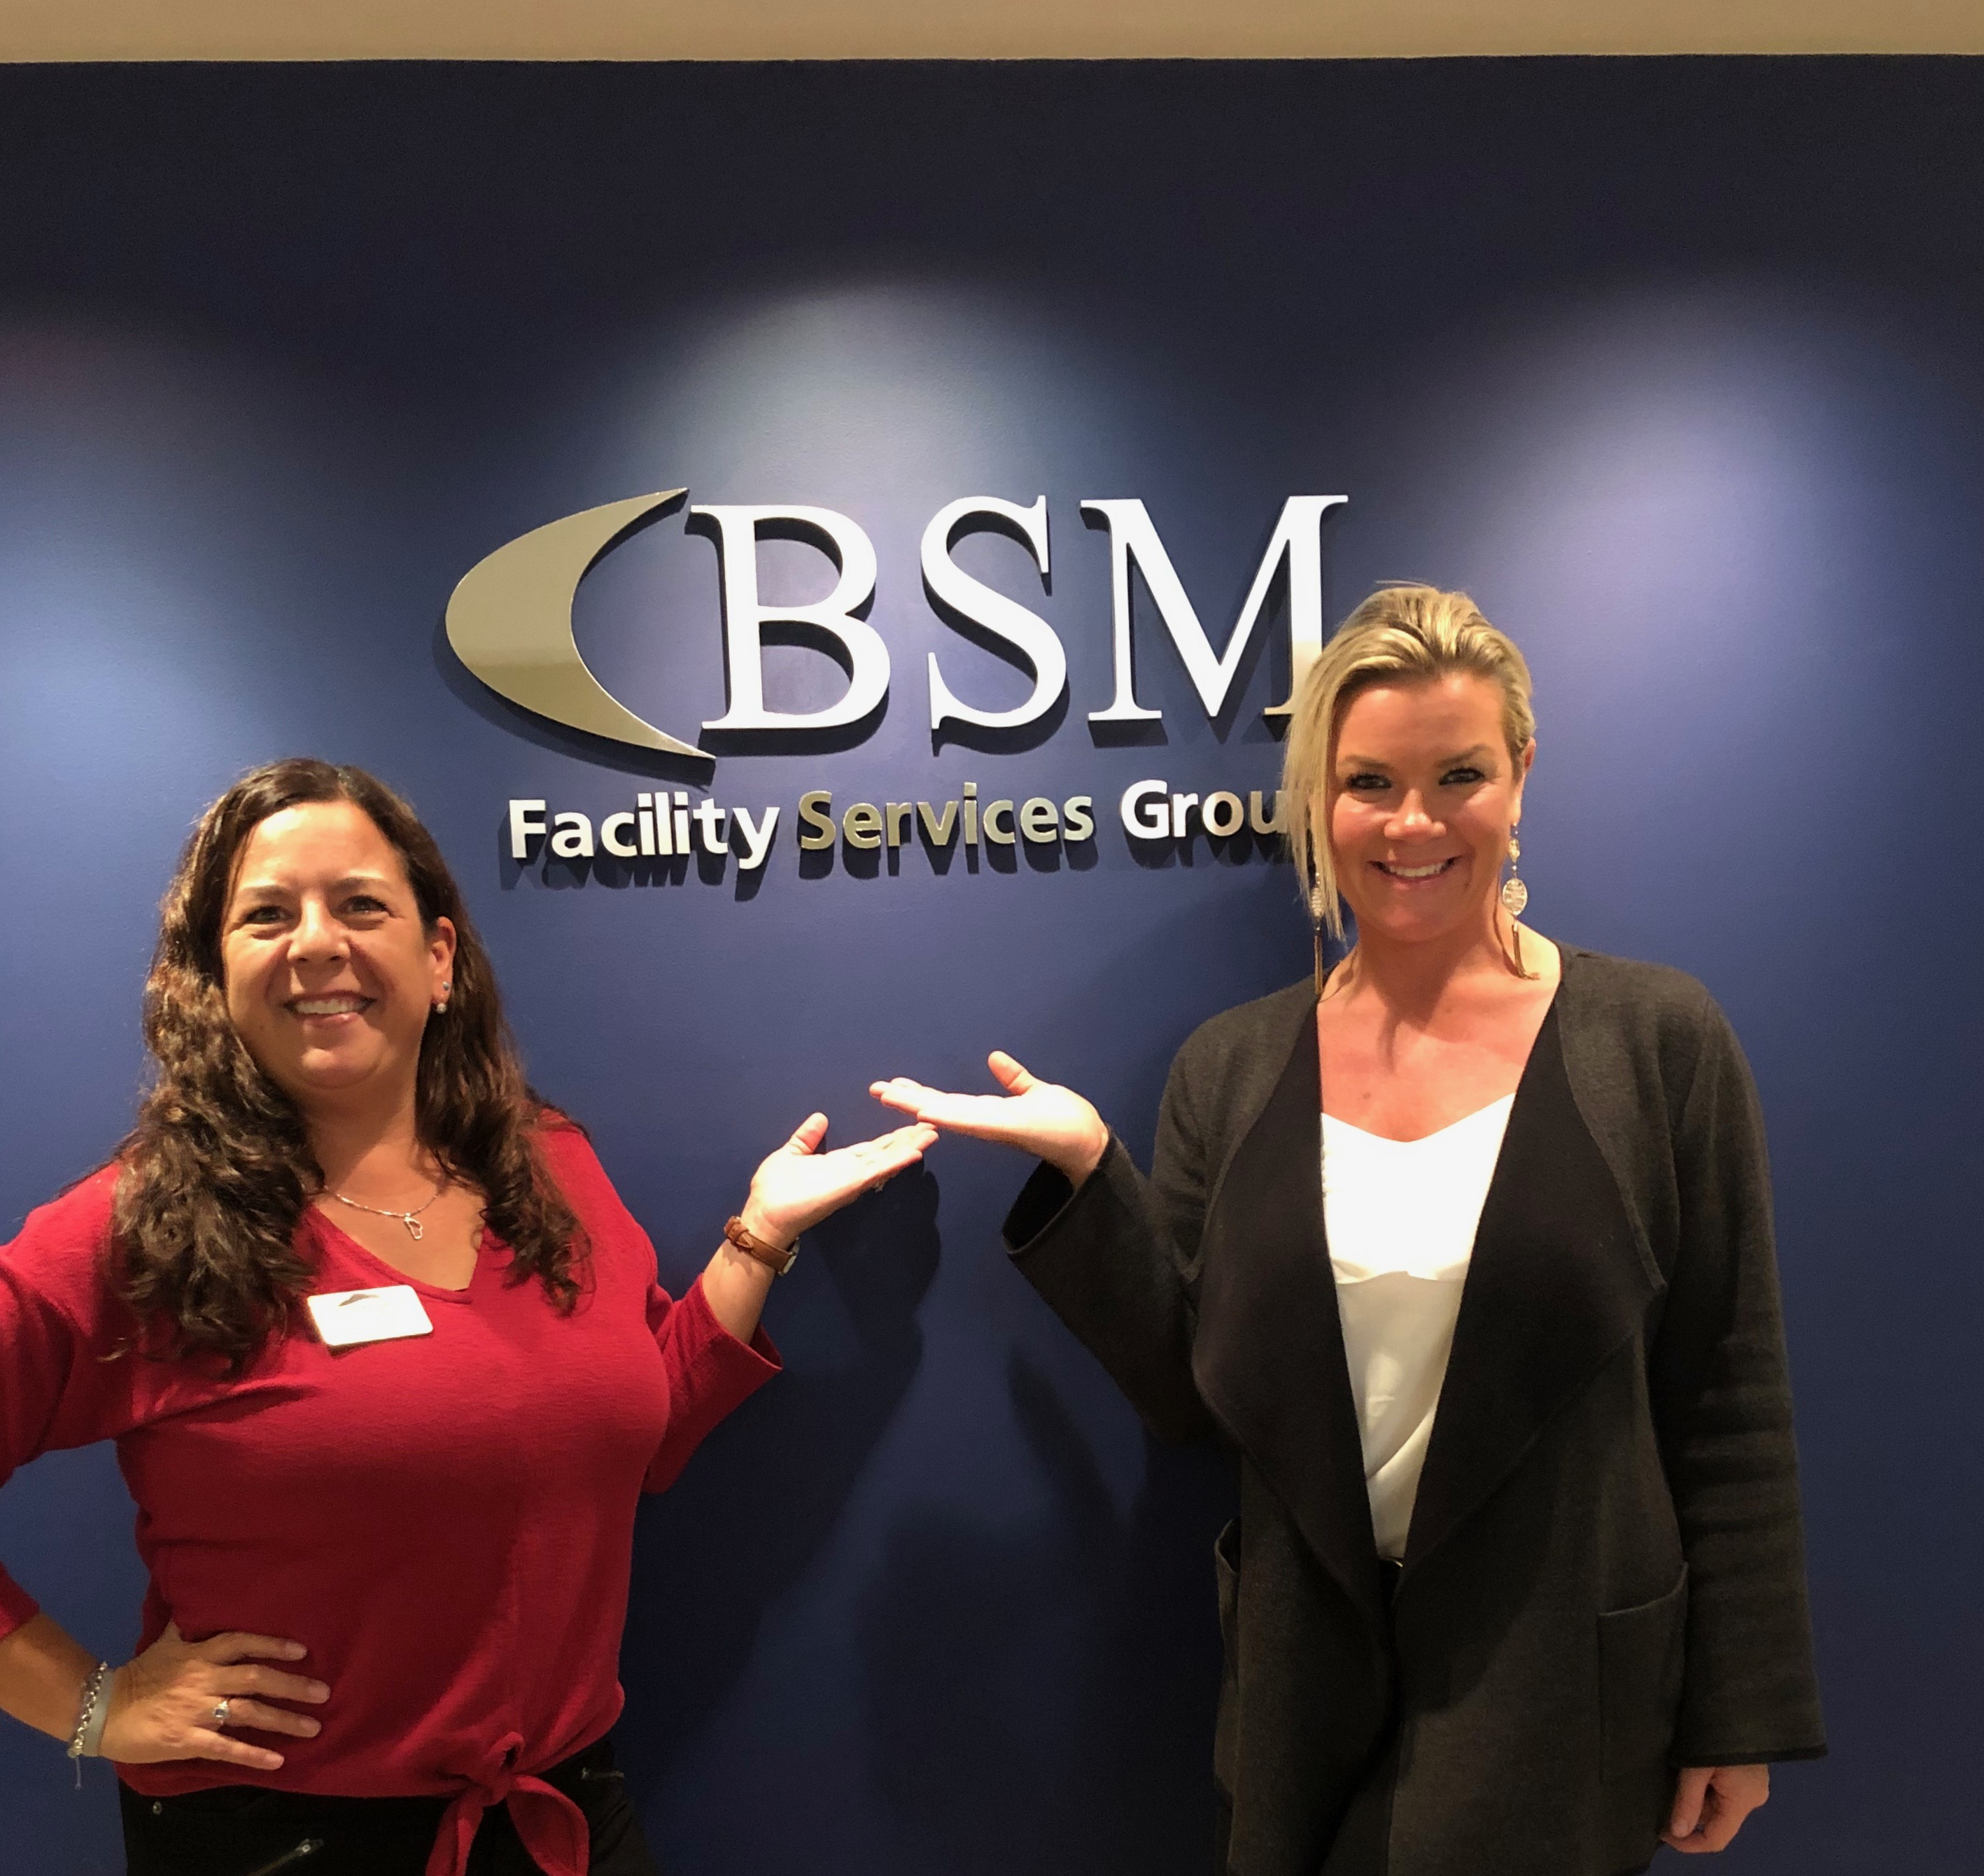 BSM Facility Services Group - Robanne Olson